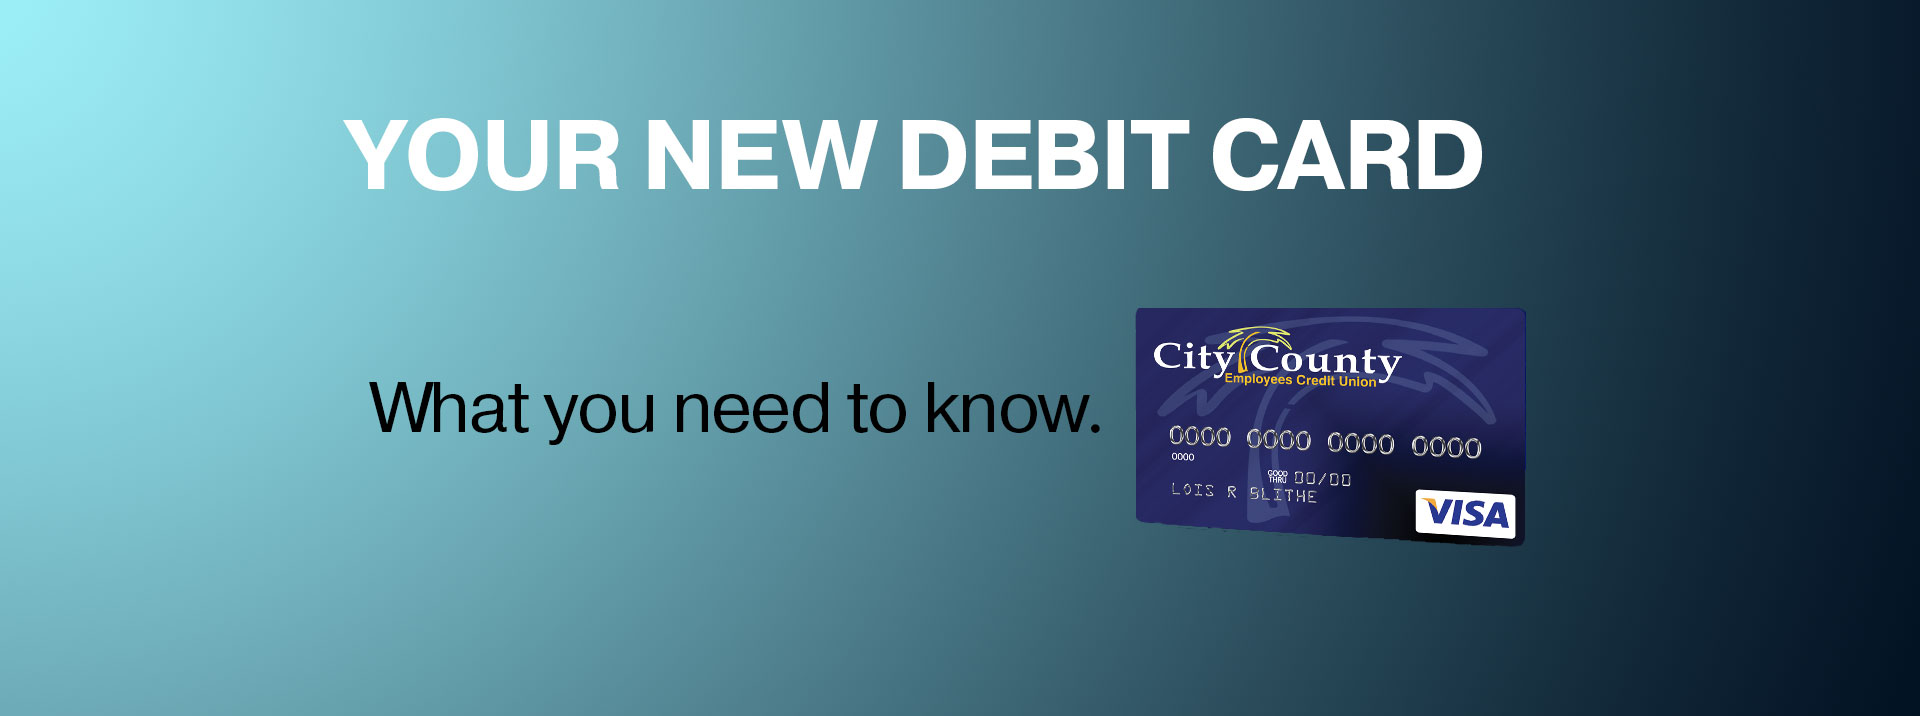 Important innformation concerning your new debit card. What you need to know.